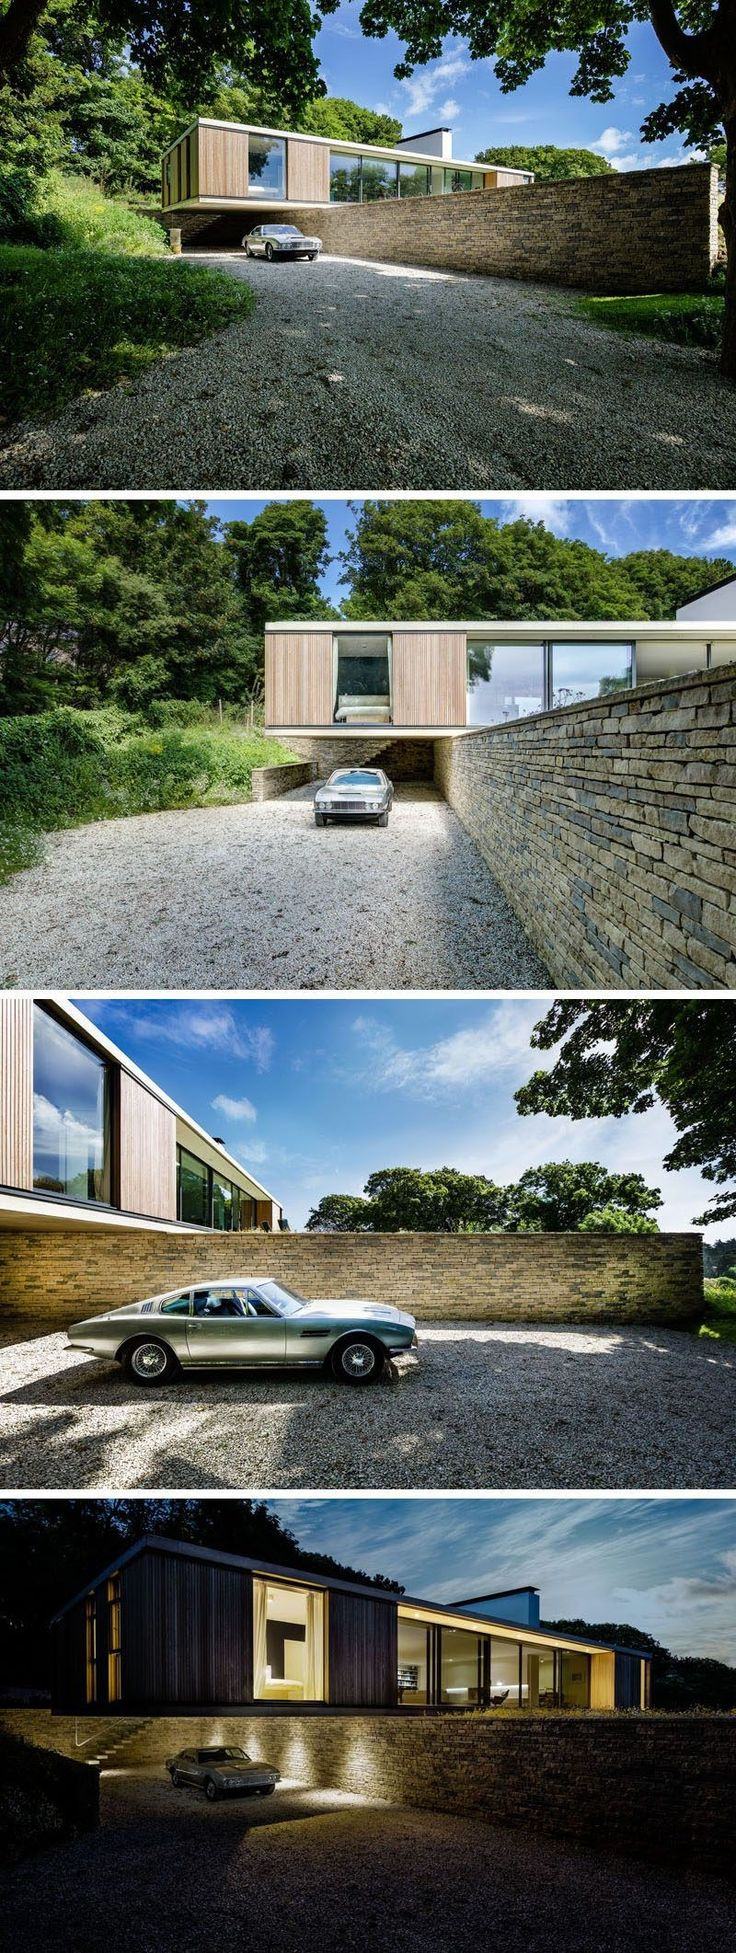 Container House - As this home is located on a sloping site, the house cantilevers out over a retaining wall faced in local Purbeck stone, and creates a sheltered parking area. Lighting has been added underneath the cantilevered section to make it easier to see at night. - Who Else Wants Simple Step-By-Step Plans To Design And Build A Container Home From Scratch?